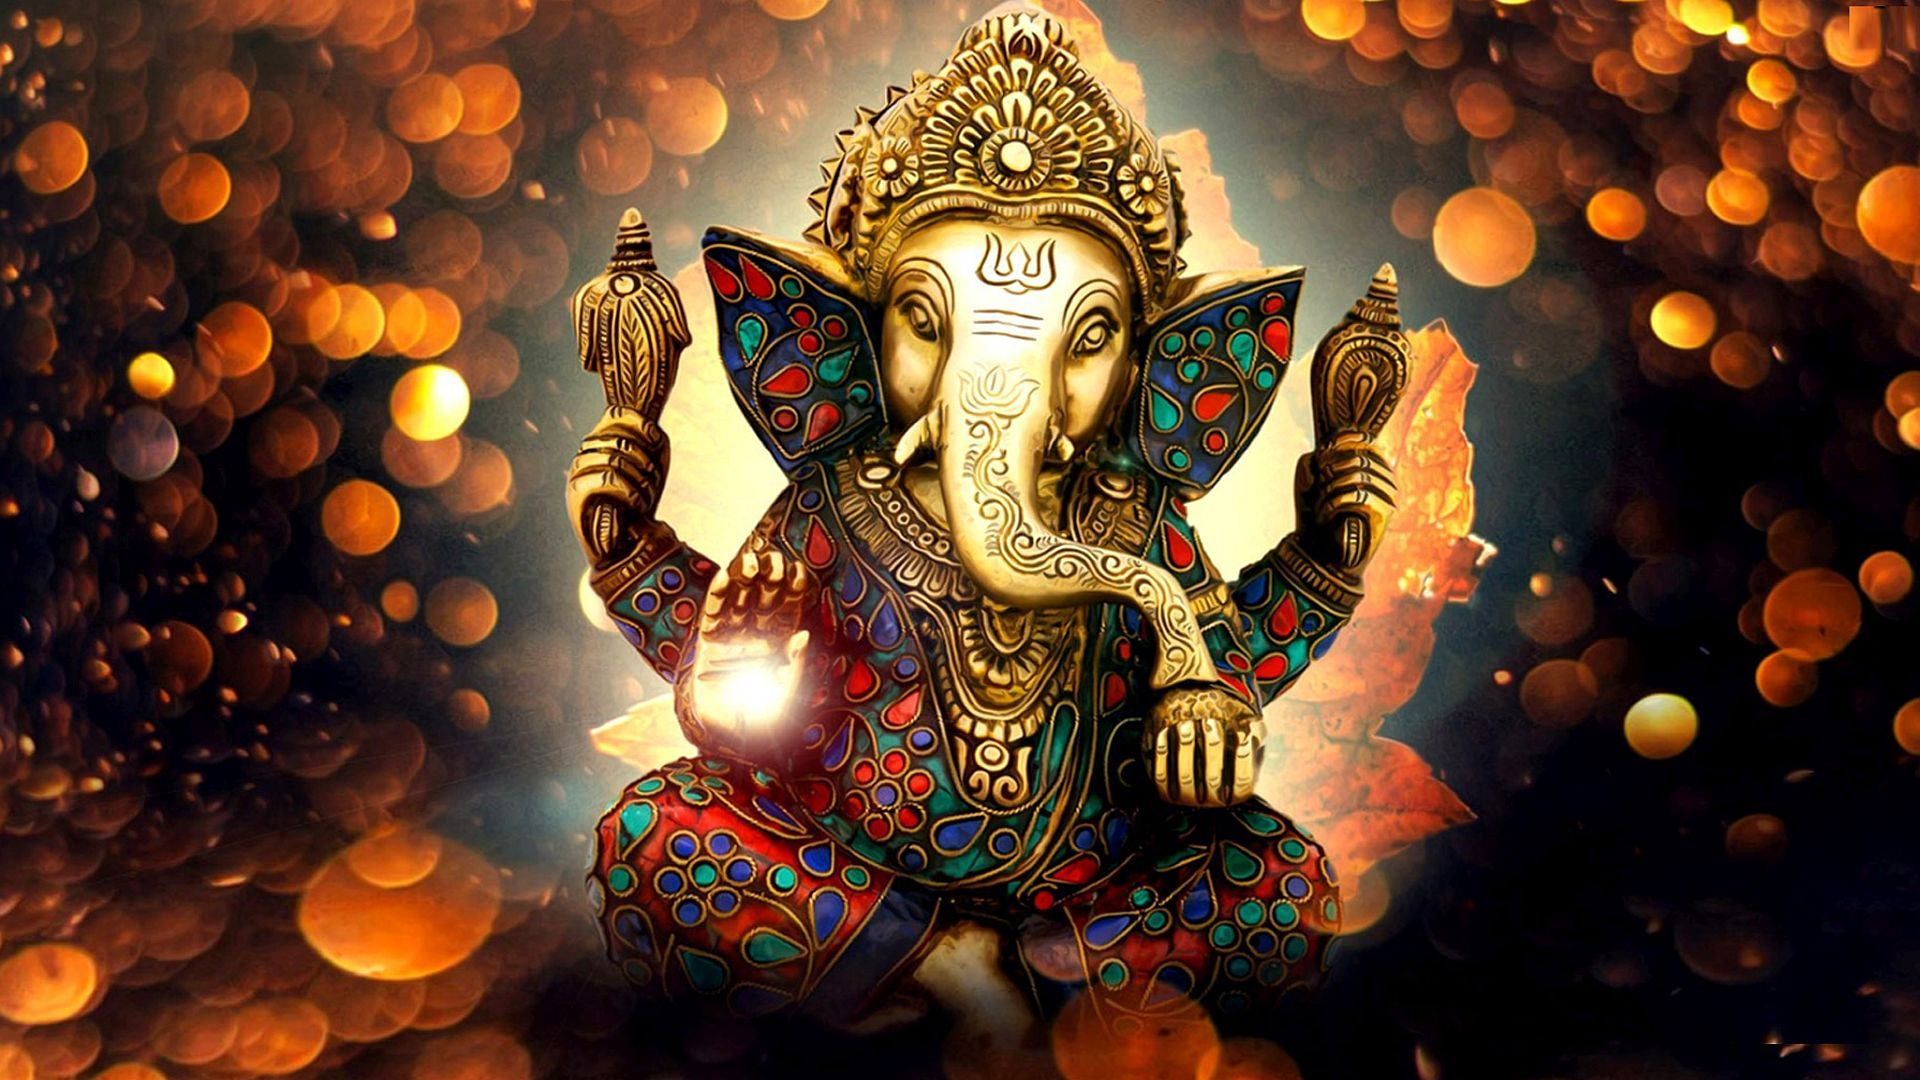 lord ganesha hd wallpapers 1080p | religious wallpaper | pinterest